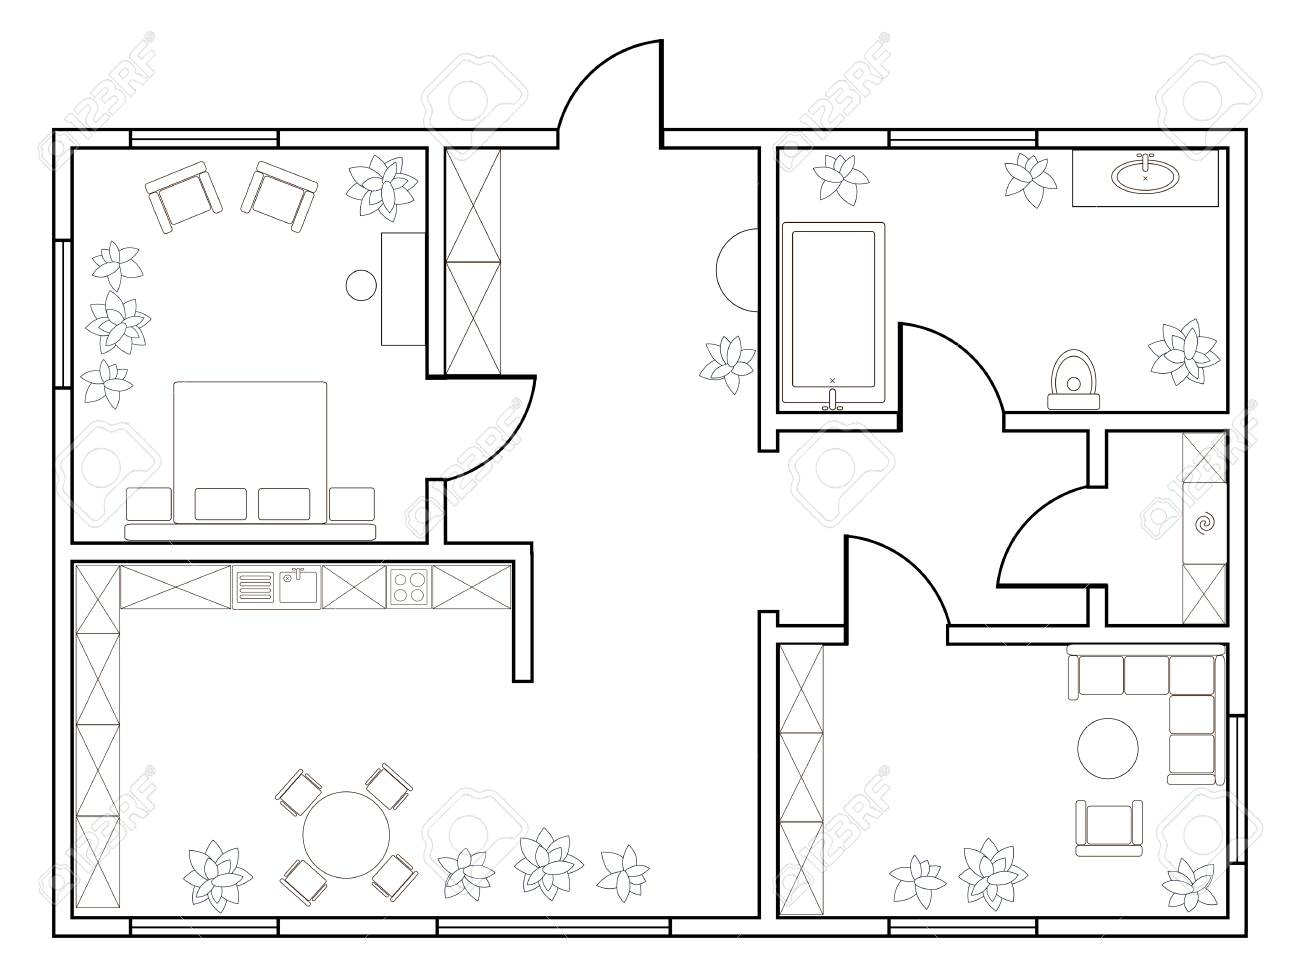 Abstract Vector Plan Of One Bedroom Apartment With Kitchen